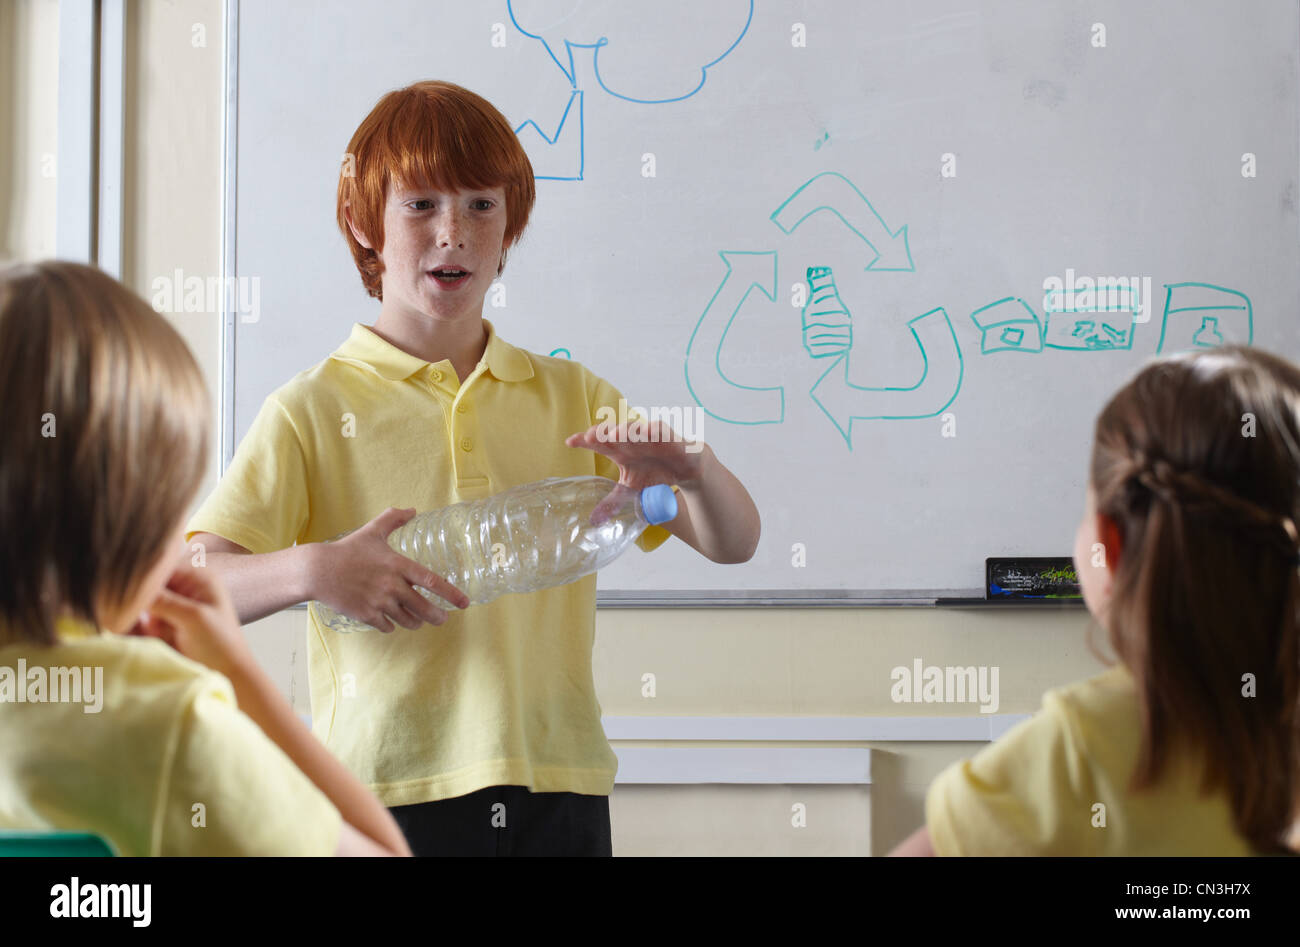 School children discussing recycling issues in classroom - Stock Image